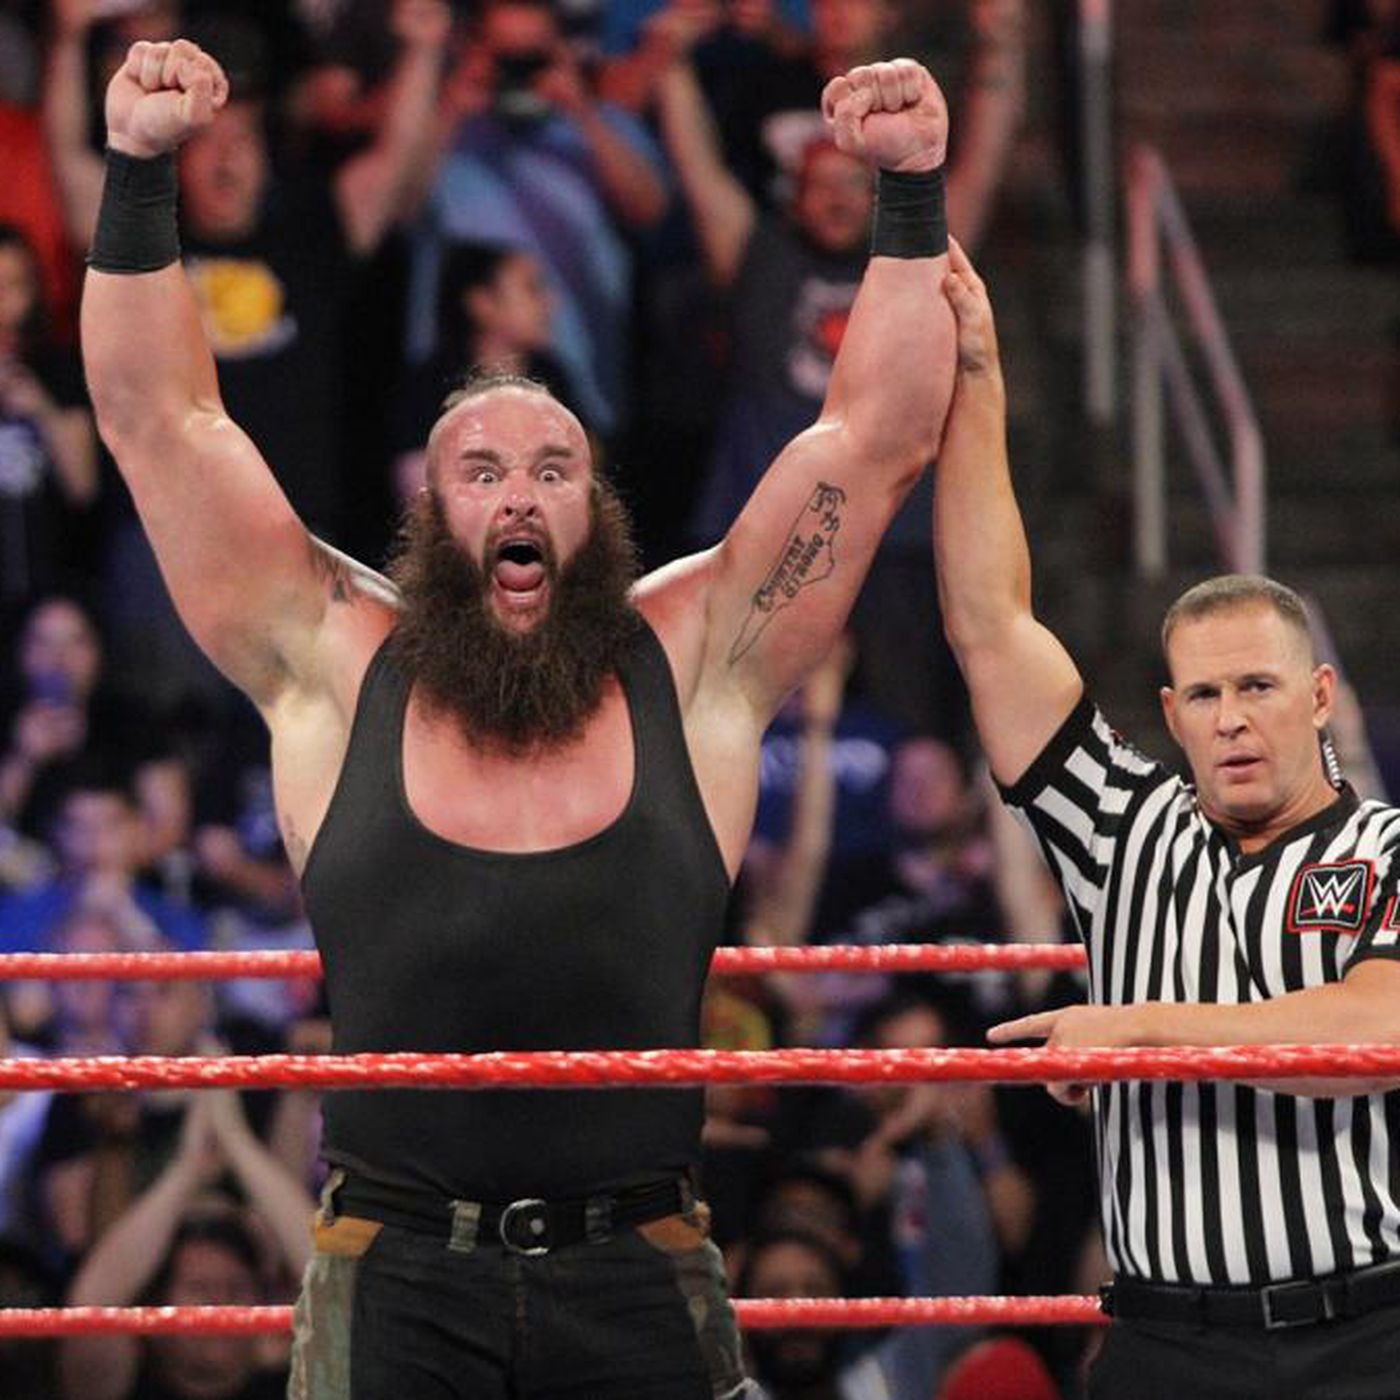 WWE SummerSlam 2018 How Braun Strowman Became WWEs 68 385 Pound Face